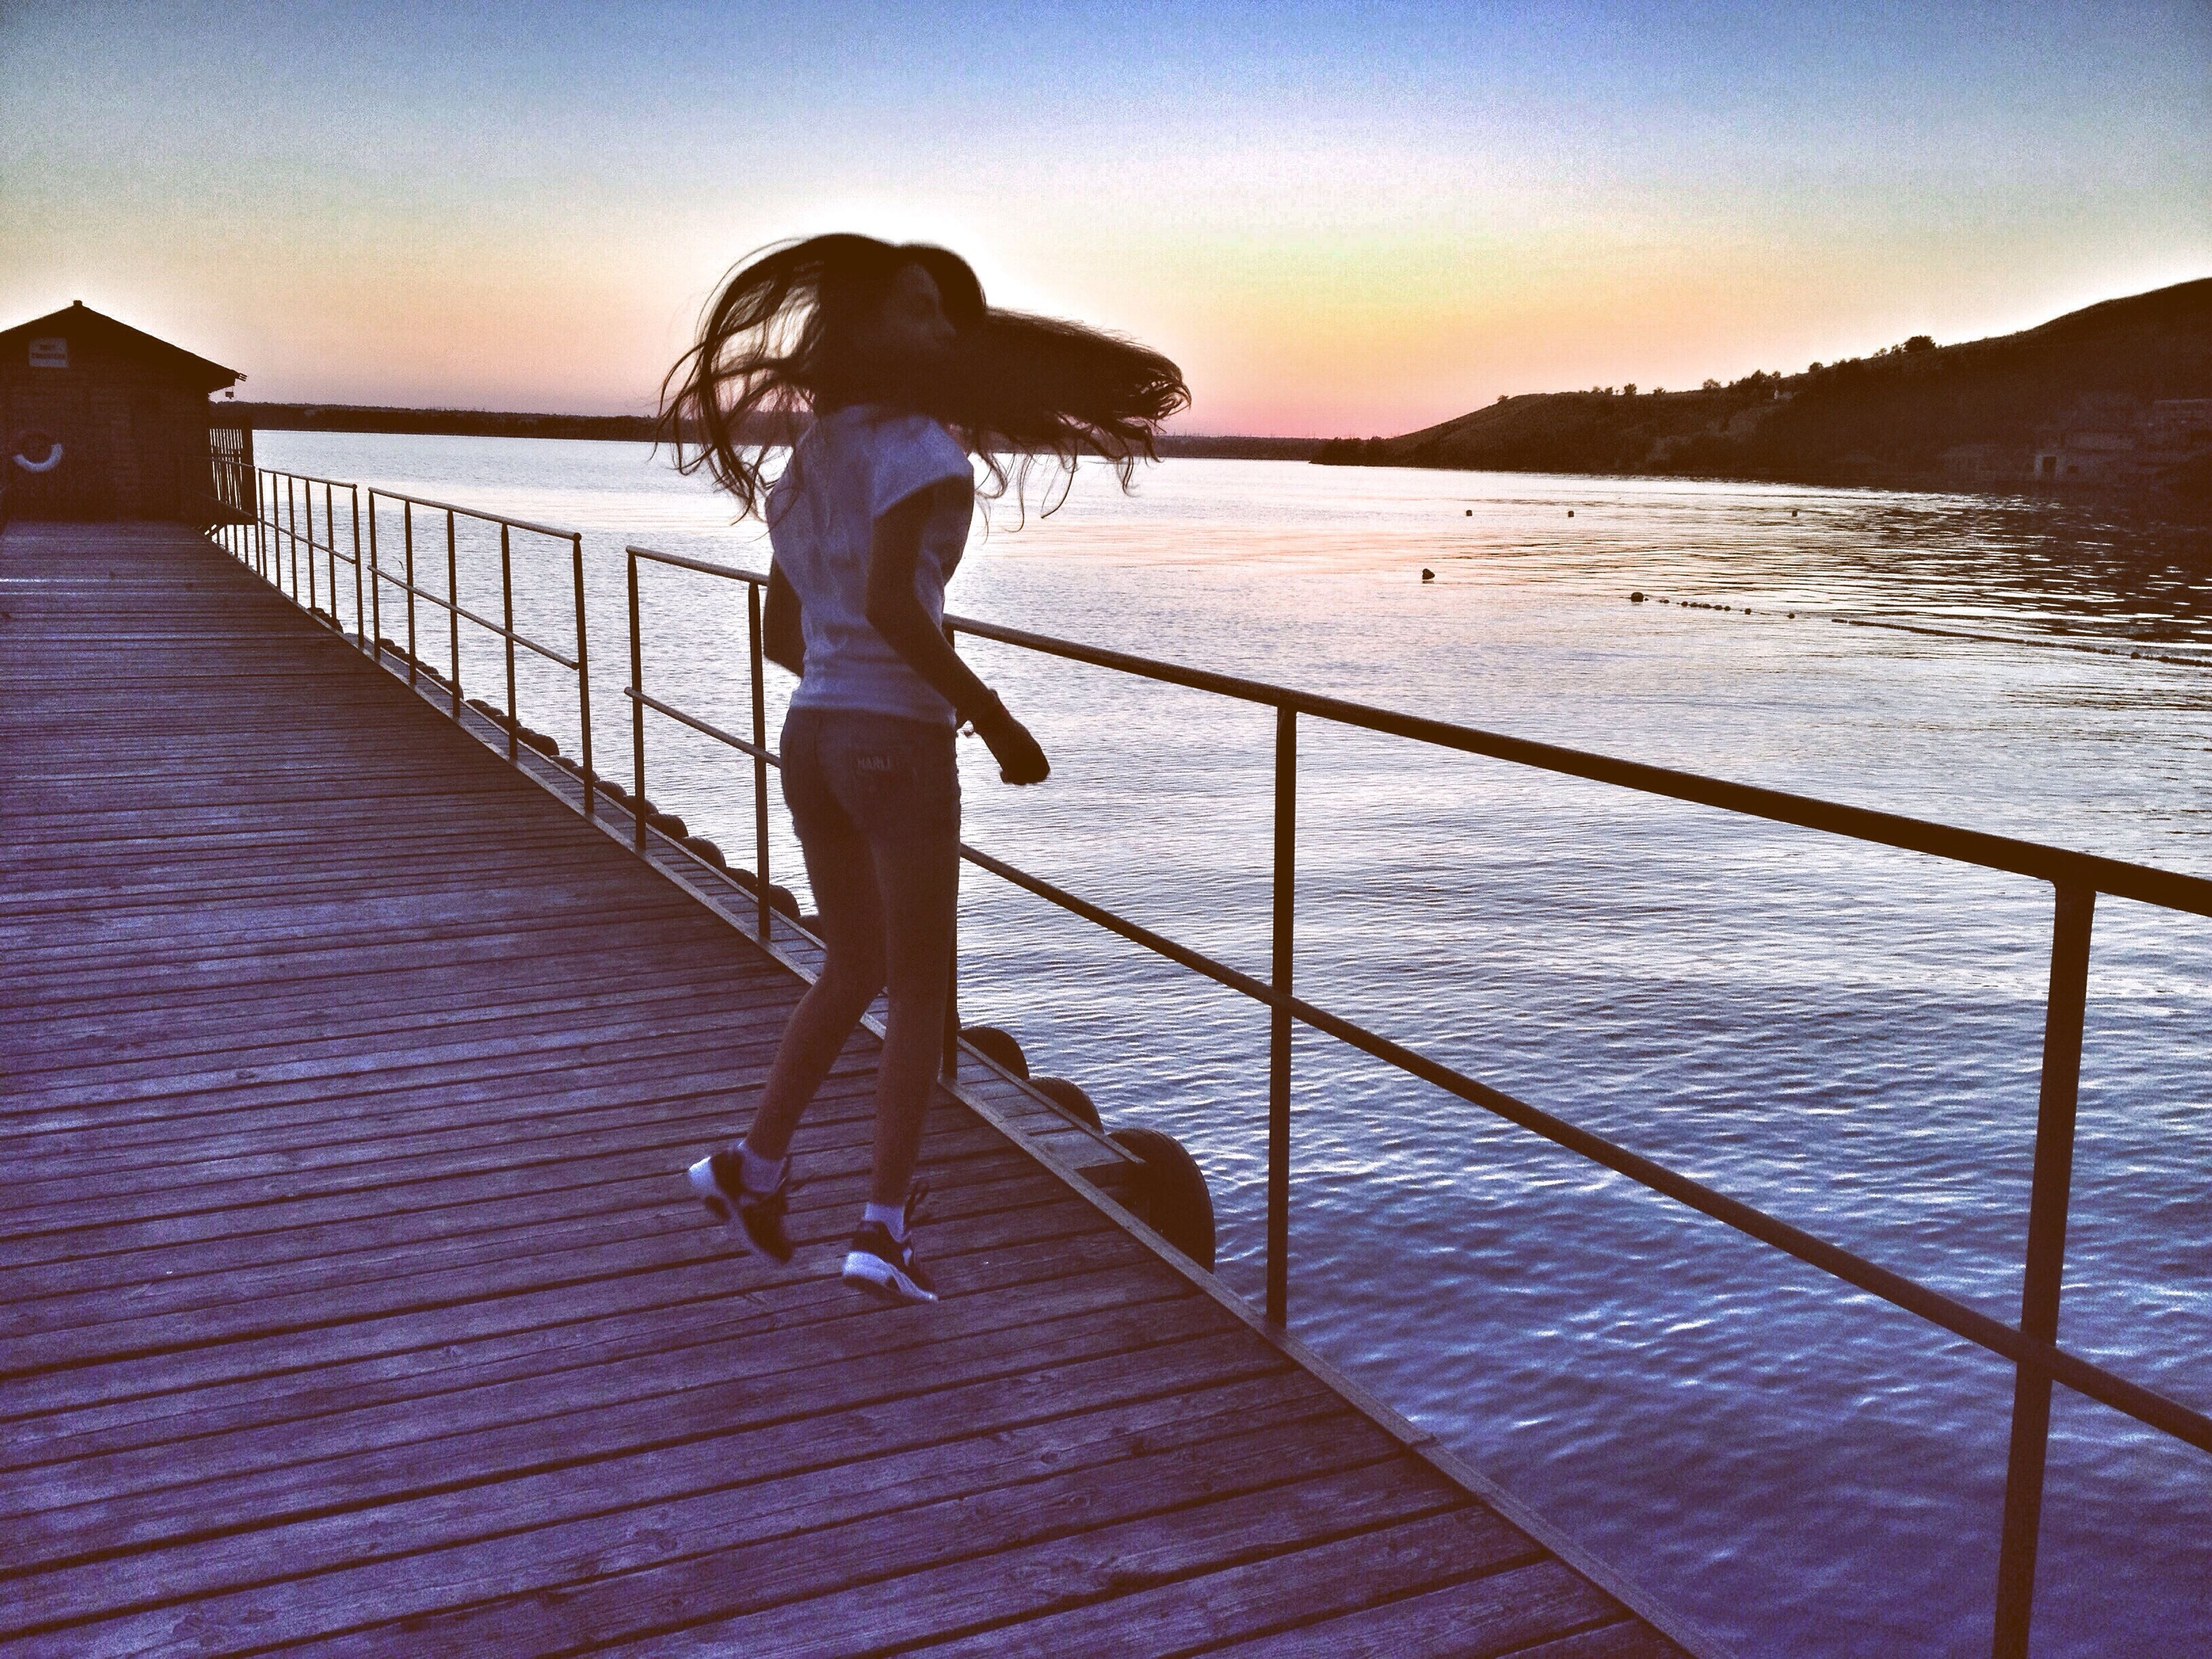 railing, full length, water, sea, sky, sunset, outdoors, pier, rear view, one person, horizon over water, vacations, standing, nature, leisure activity, people, adults only, adult, beauty in nature, beach, bridge - man made structure, one woman only, day, only women